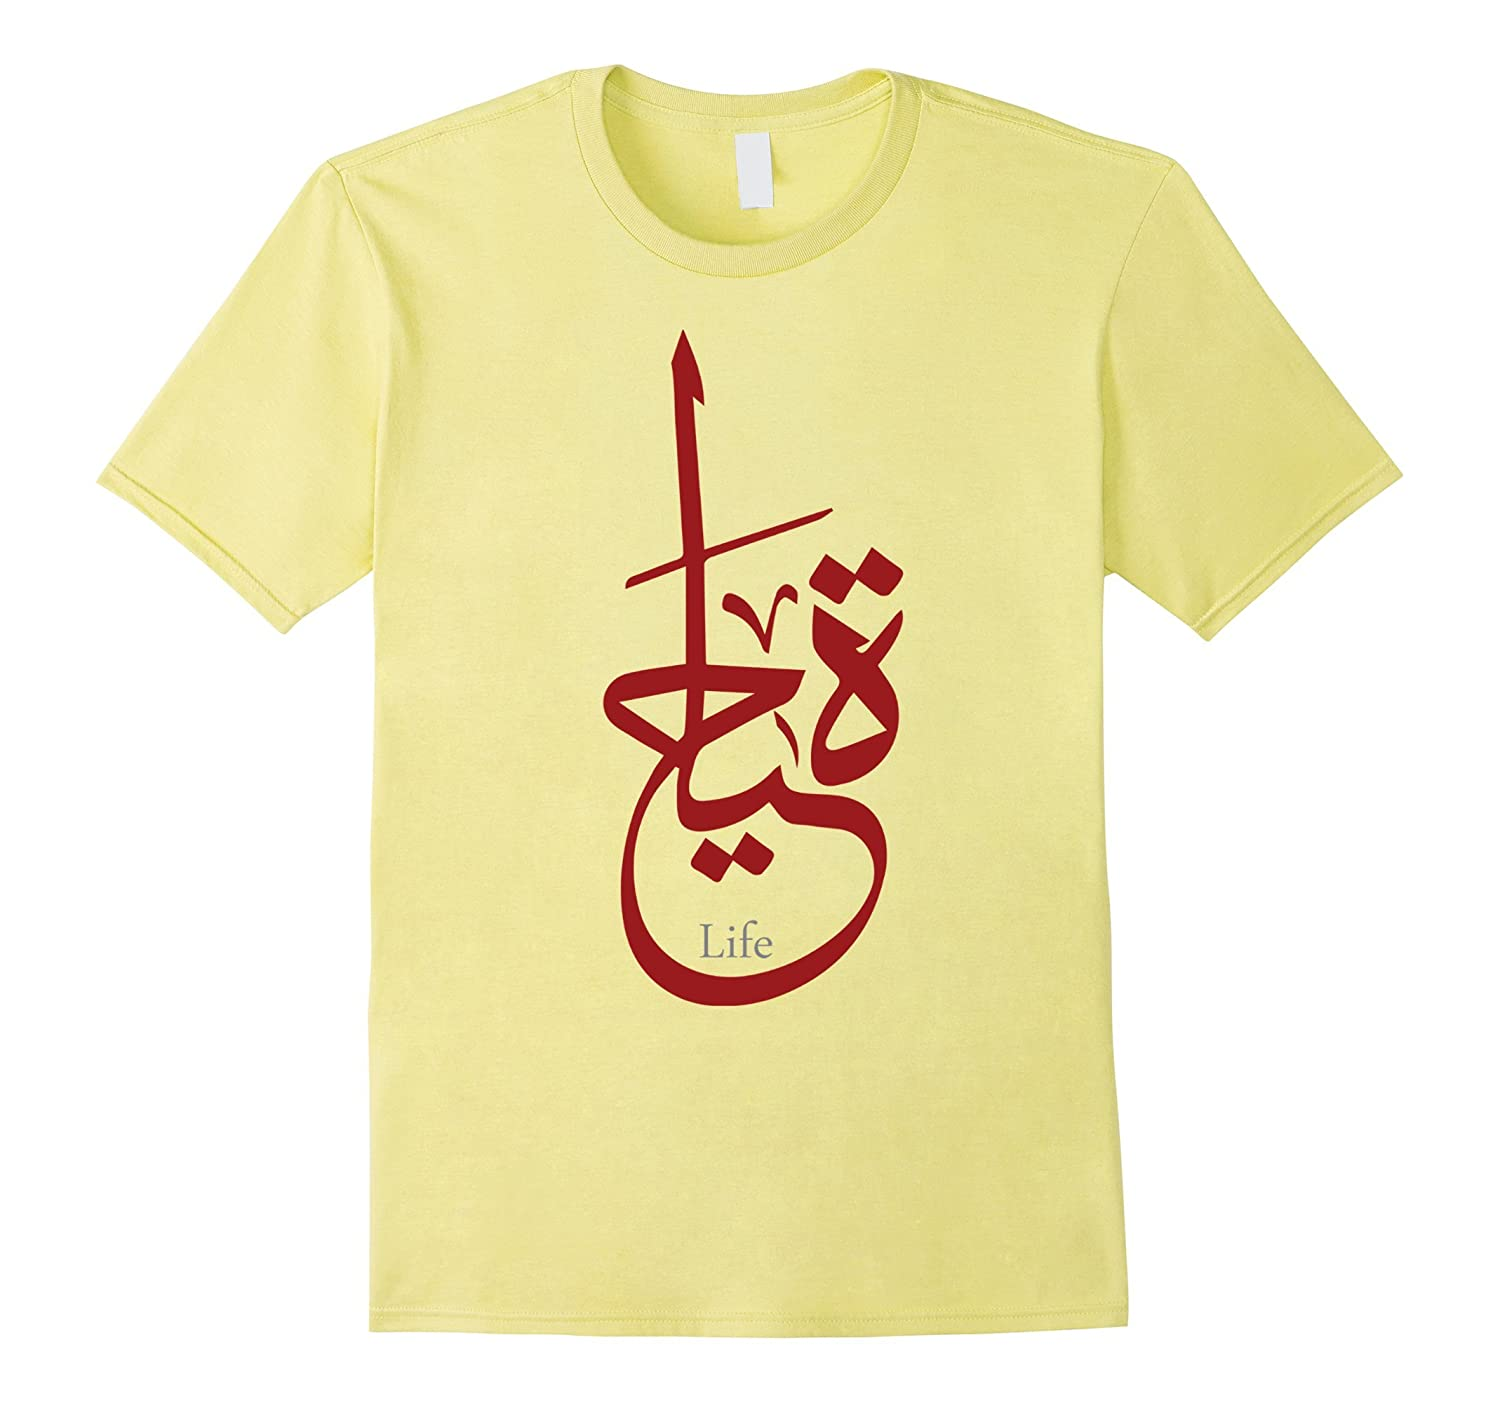 T Shirt Arabic Calligraphy Life Rt Rateeshirt